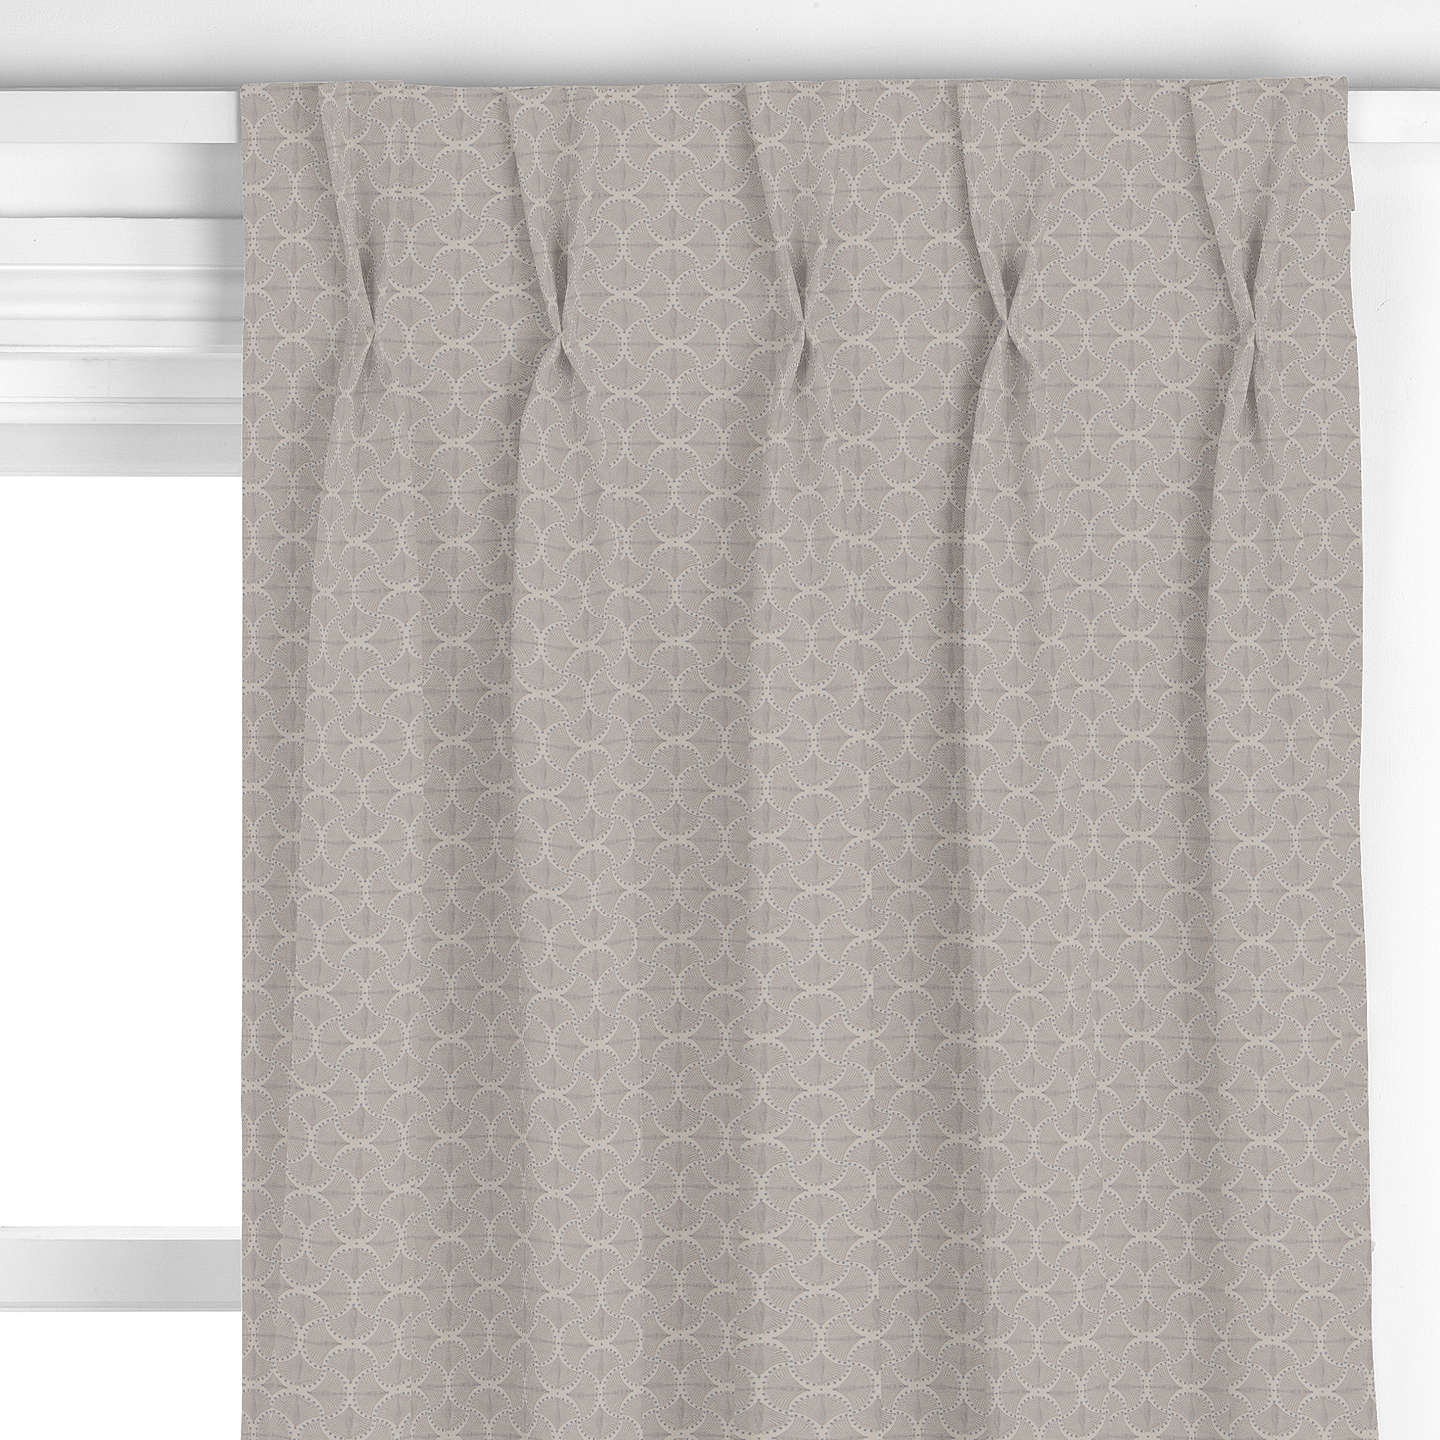 BuyGenevieve Bennett for John Lewis Deco Palm Curtain, Blue Grey Online at johnlewis.com